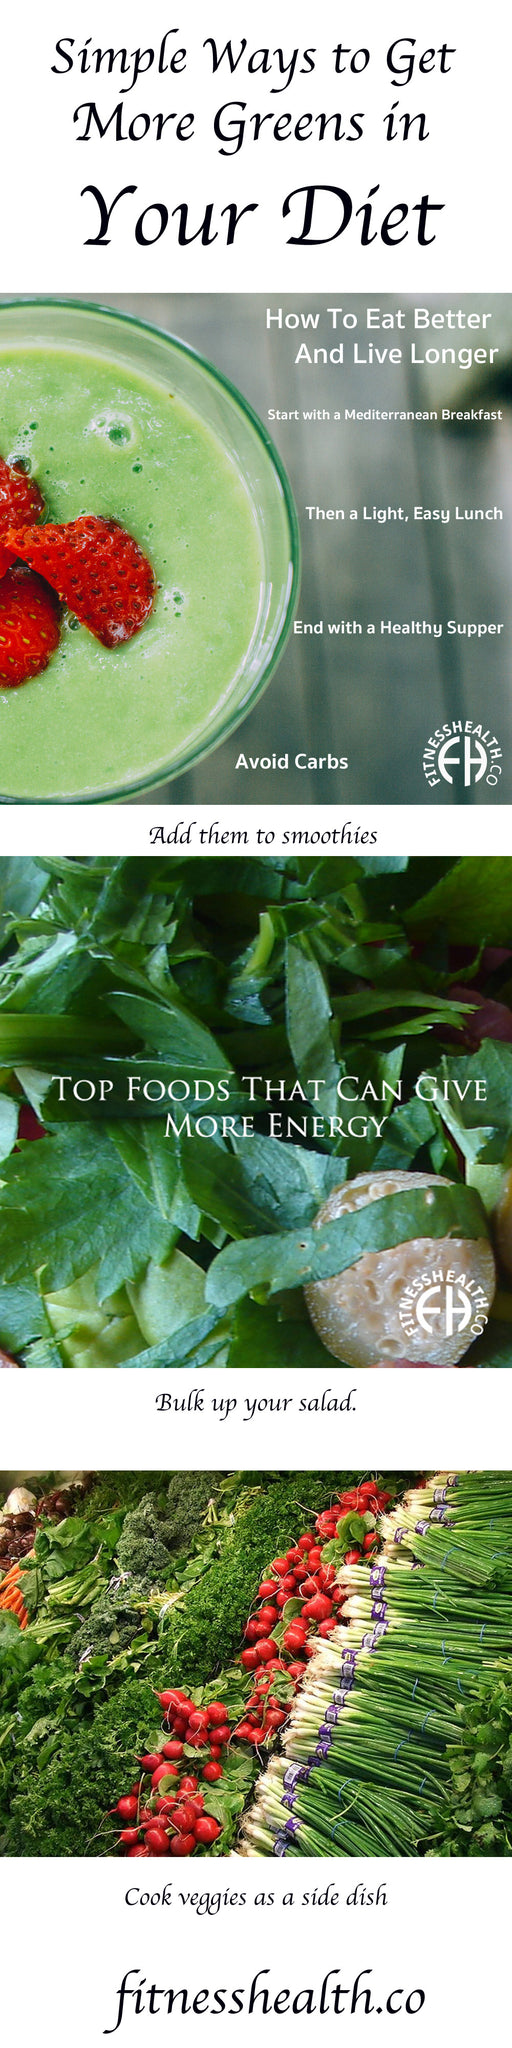 Simple Ways to Get More Greens in Your Diet